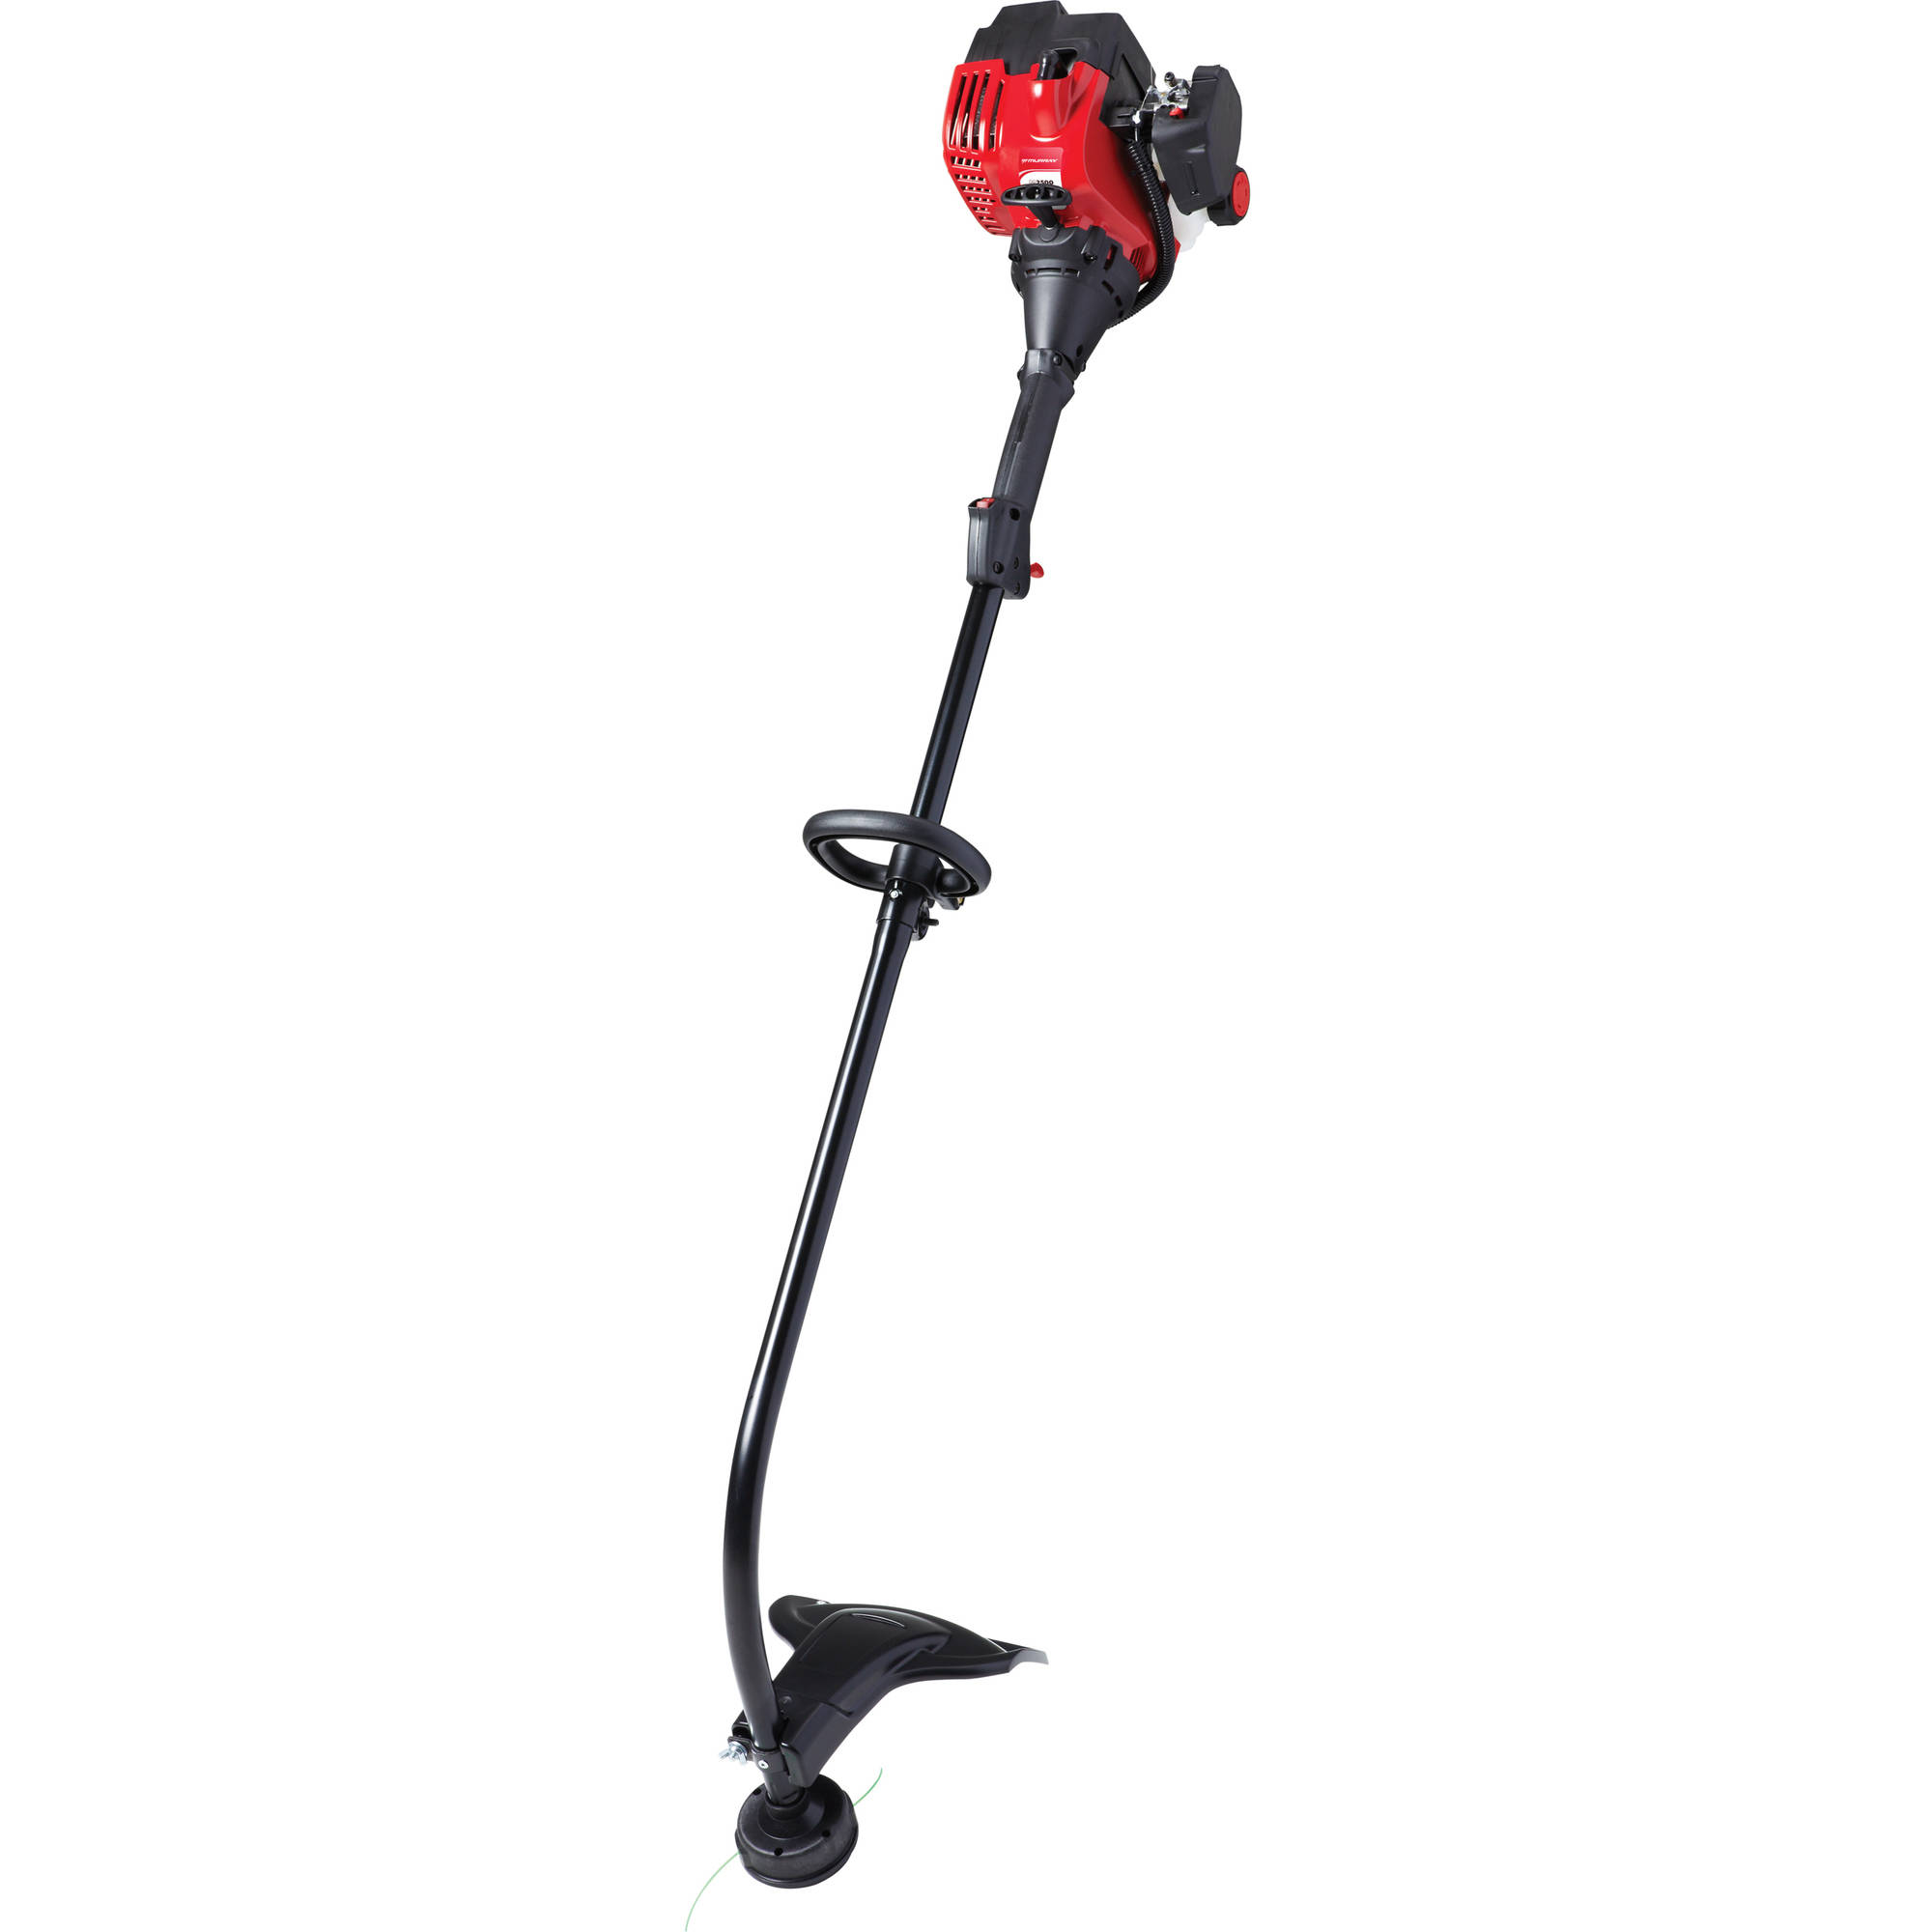 Murray 16 25cc 2 Cycle Curved Shaft Gas String Trimmer Handle Diagram And Parts List For Weedeater Walkbehindlawnmower